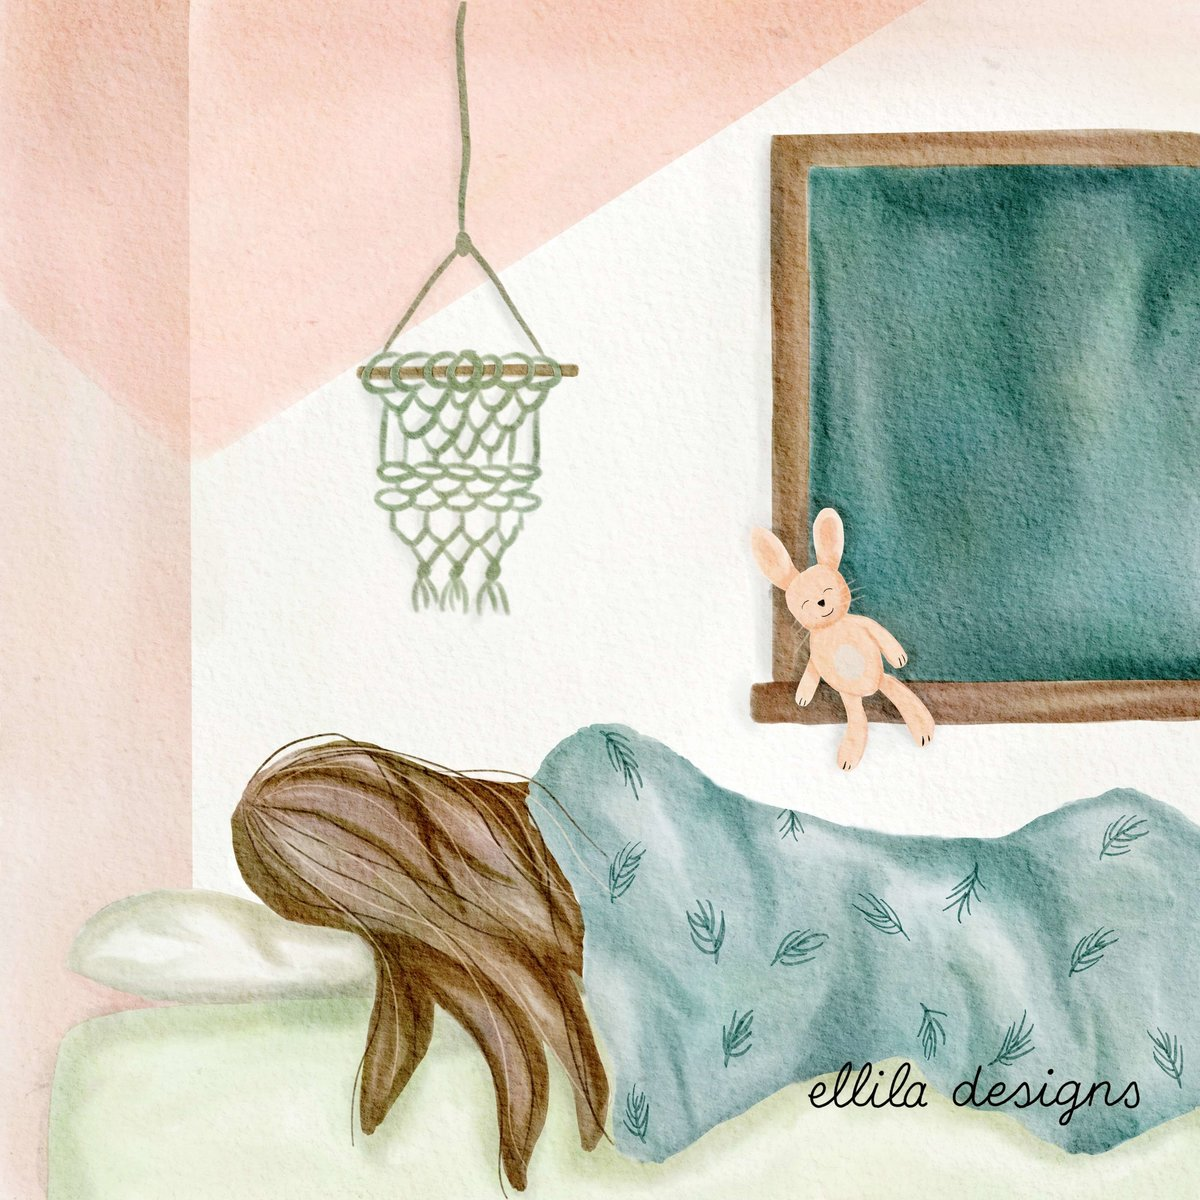 Sleeping girl illustration Ellila Designs